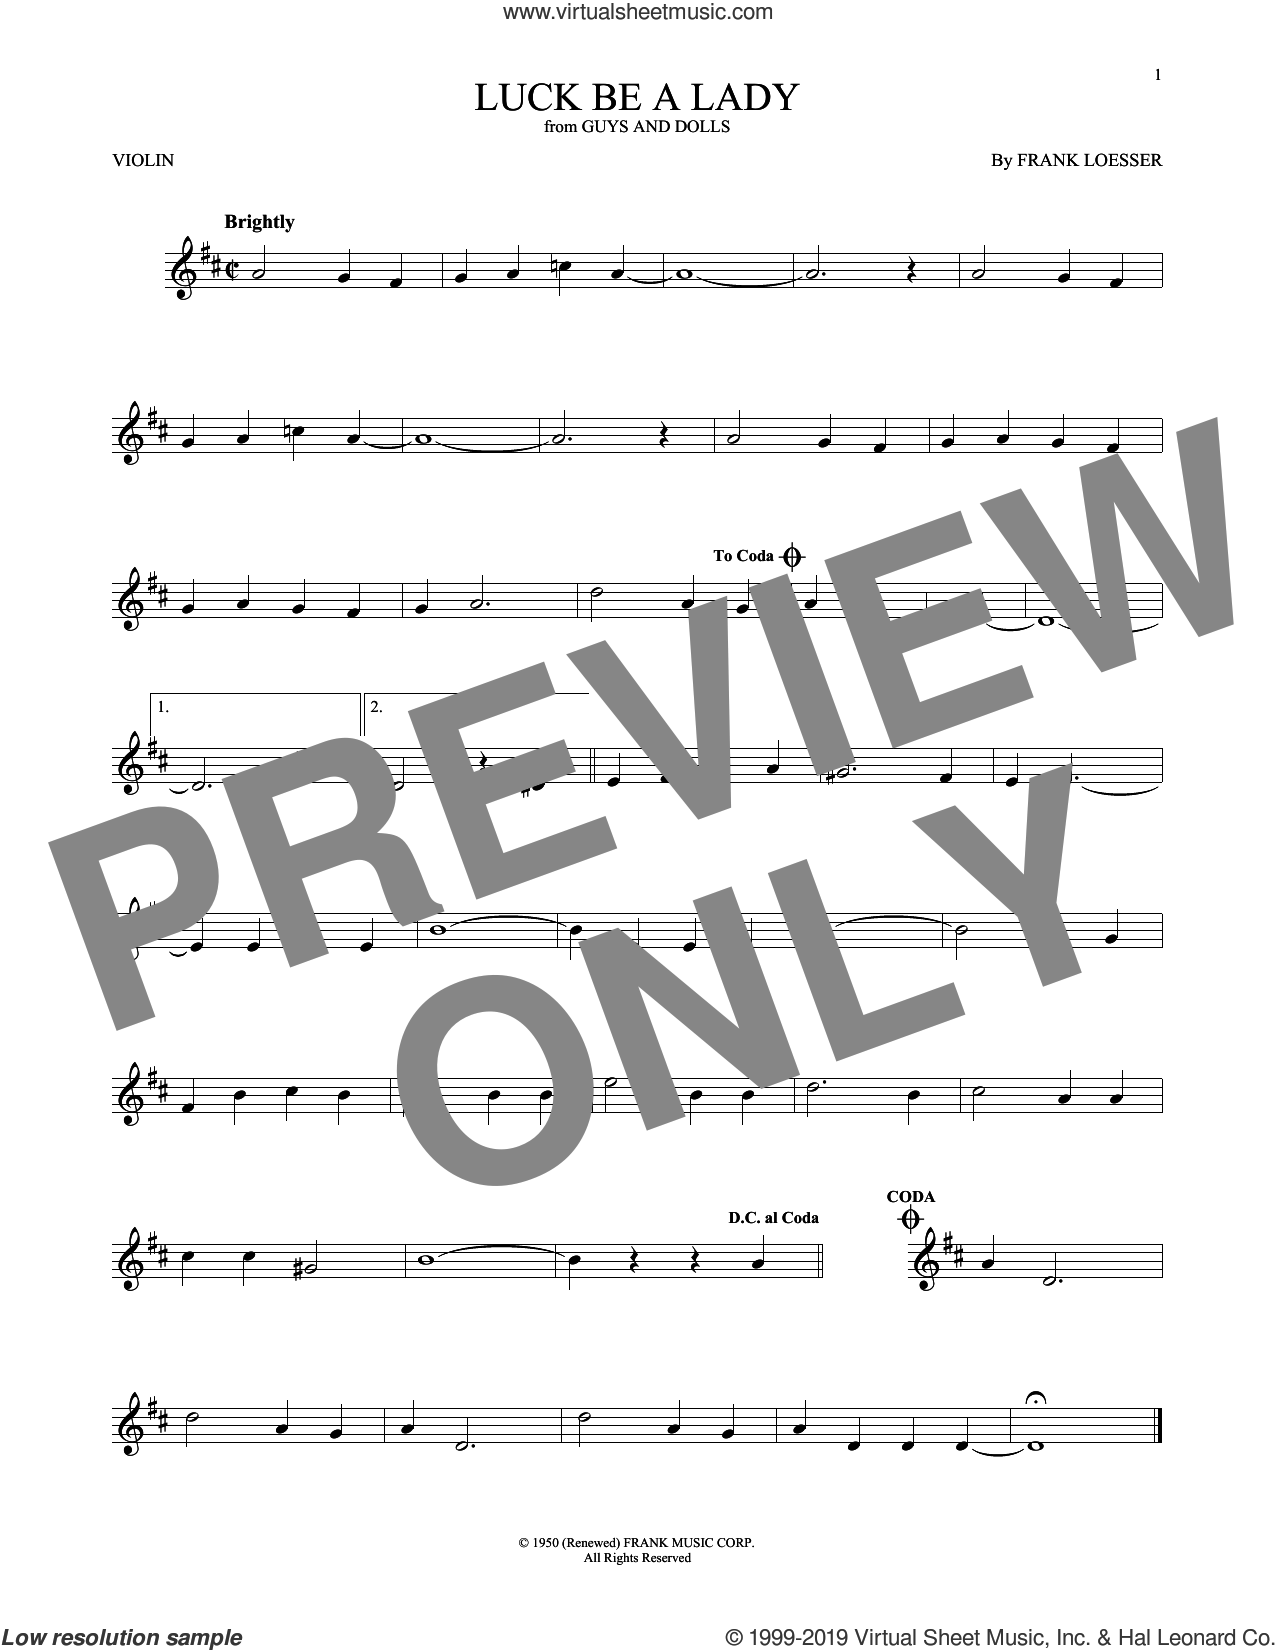 Luck Be A Lady sheet music for violin solo by Frank Loesser, intermediate skill level